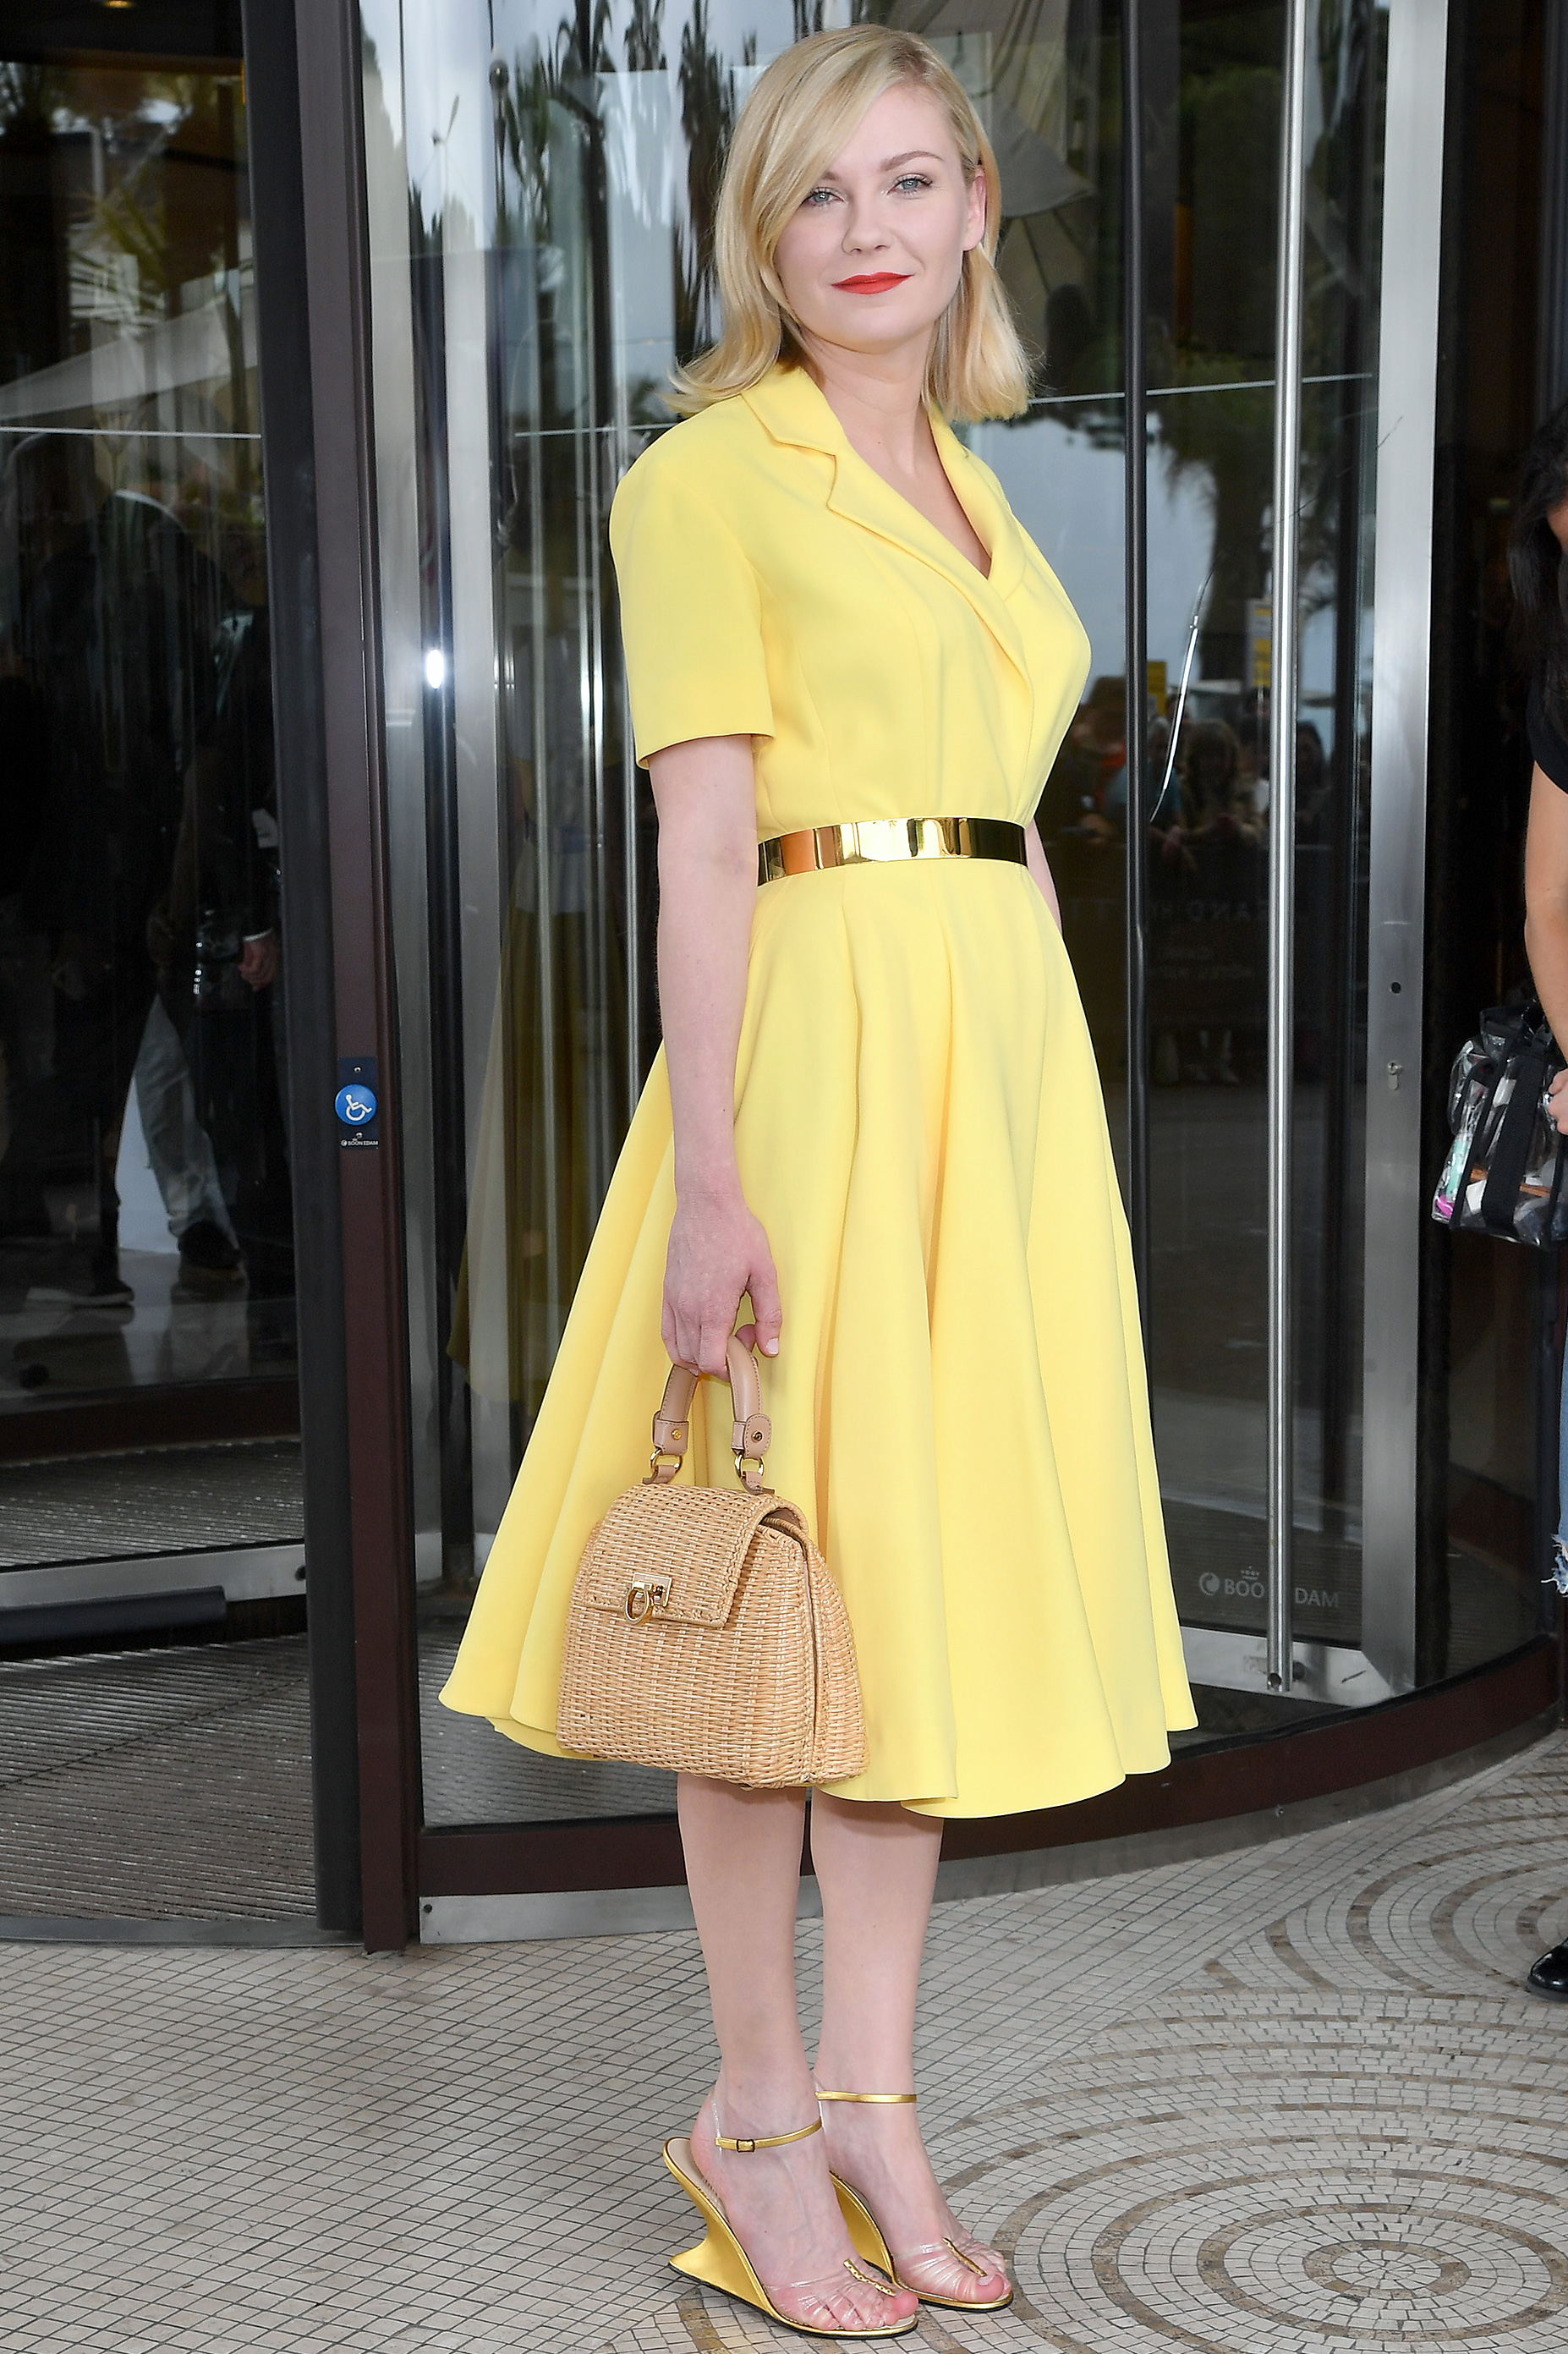 Kirsten Dunst mang sandals trong suốt